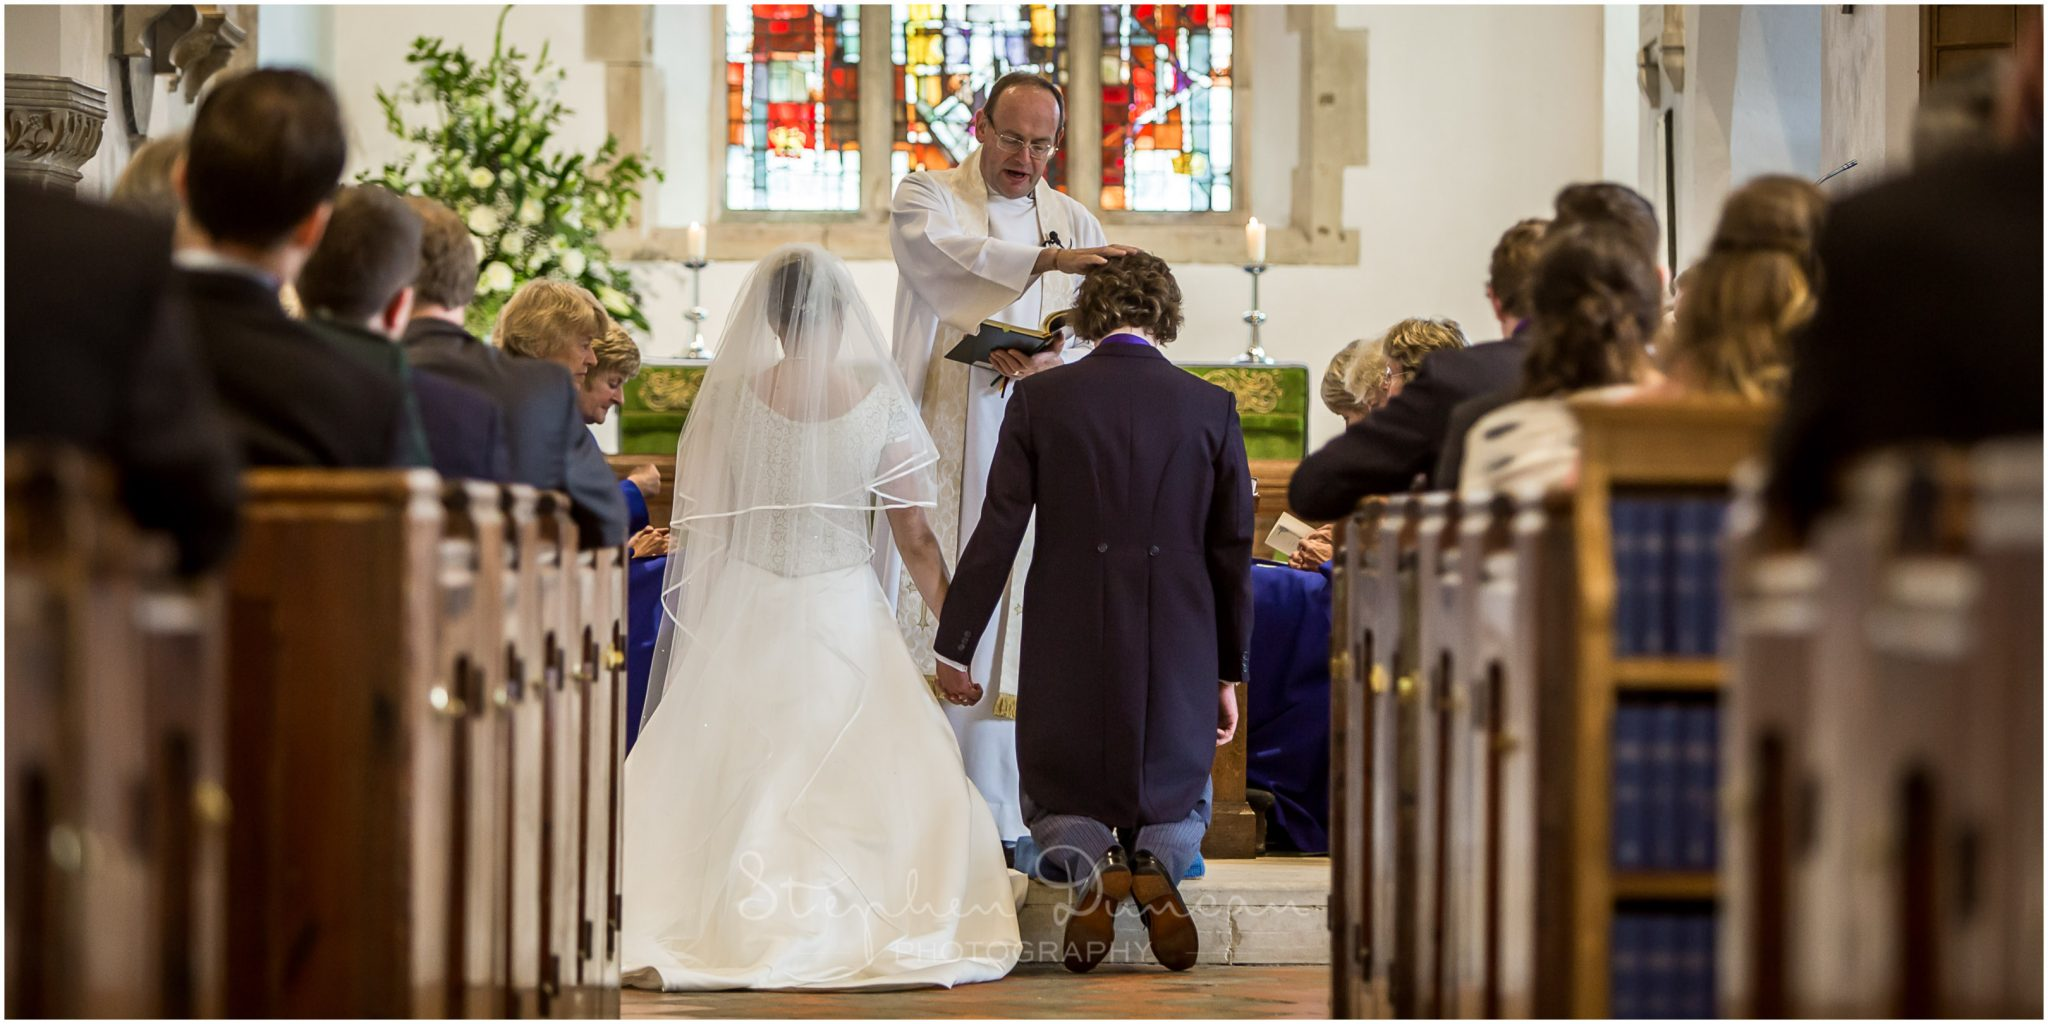 Lymington wedding photography the blessing, Boldre church